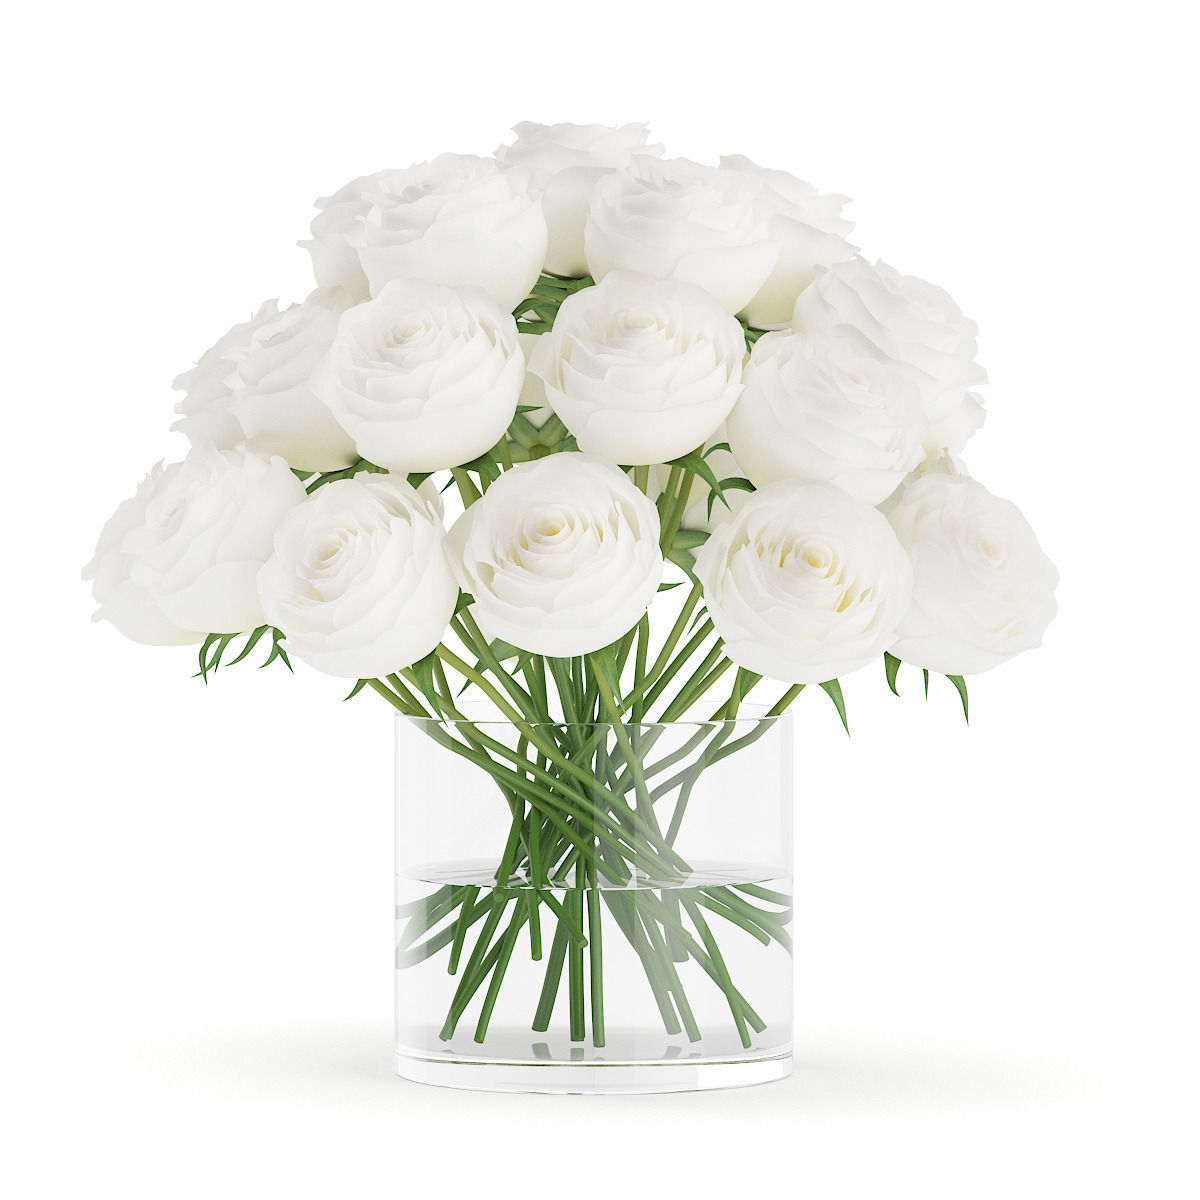 Artificial white roses in vase vase and cellar image avorcor fake white flowers in vase home design ideas mightylinksfo